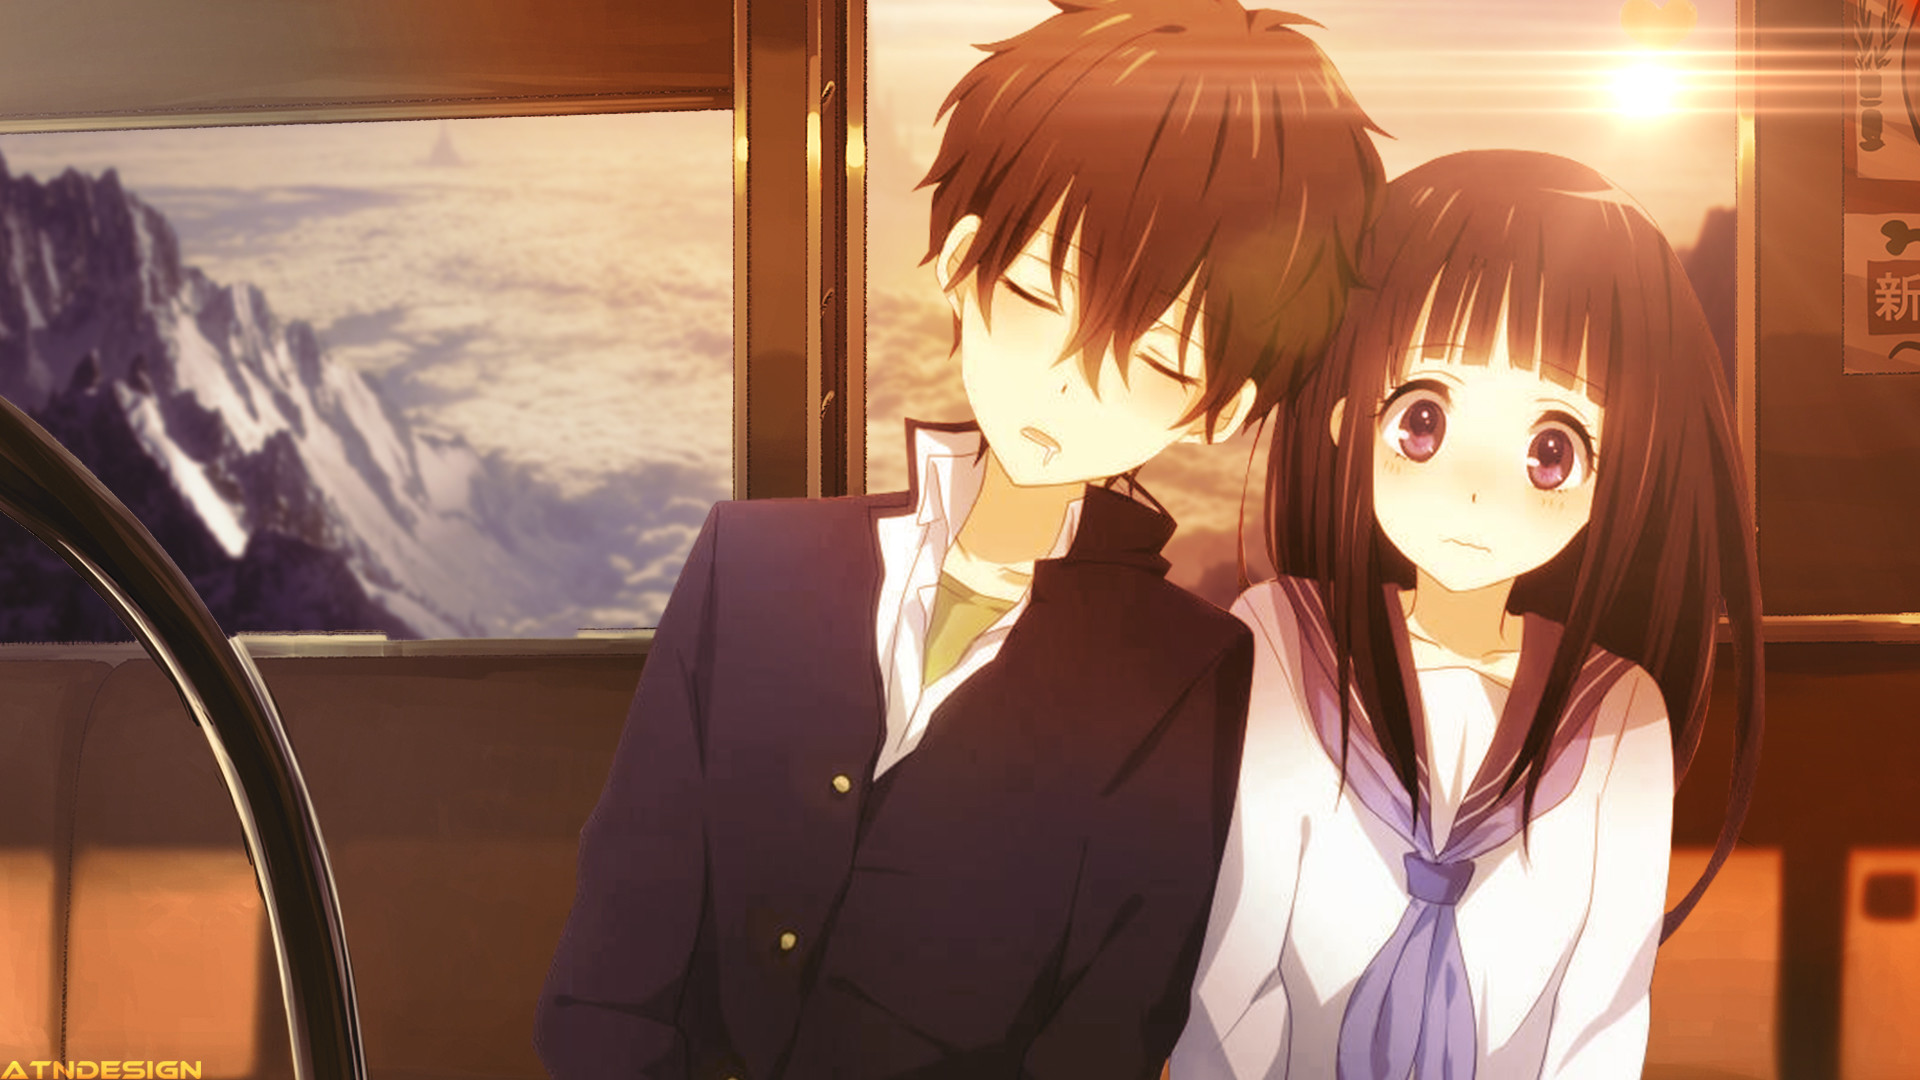 Cute anime couple wallpaper 70 images 1920x1080 cute anime couples altavistaventures Image collections